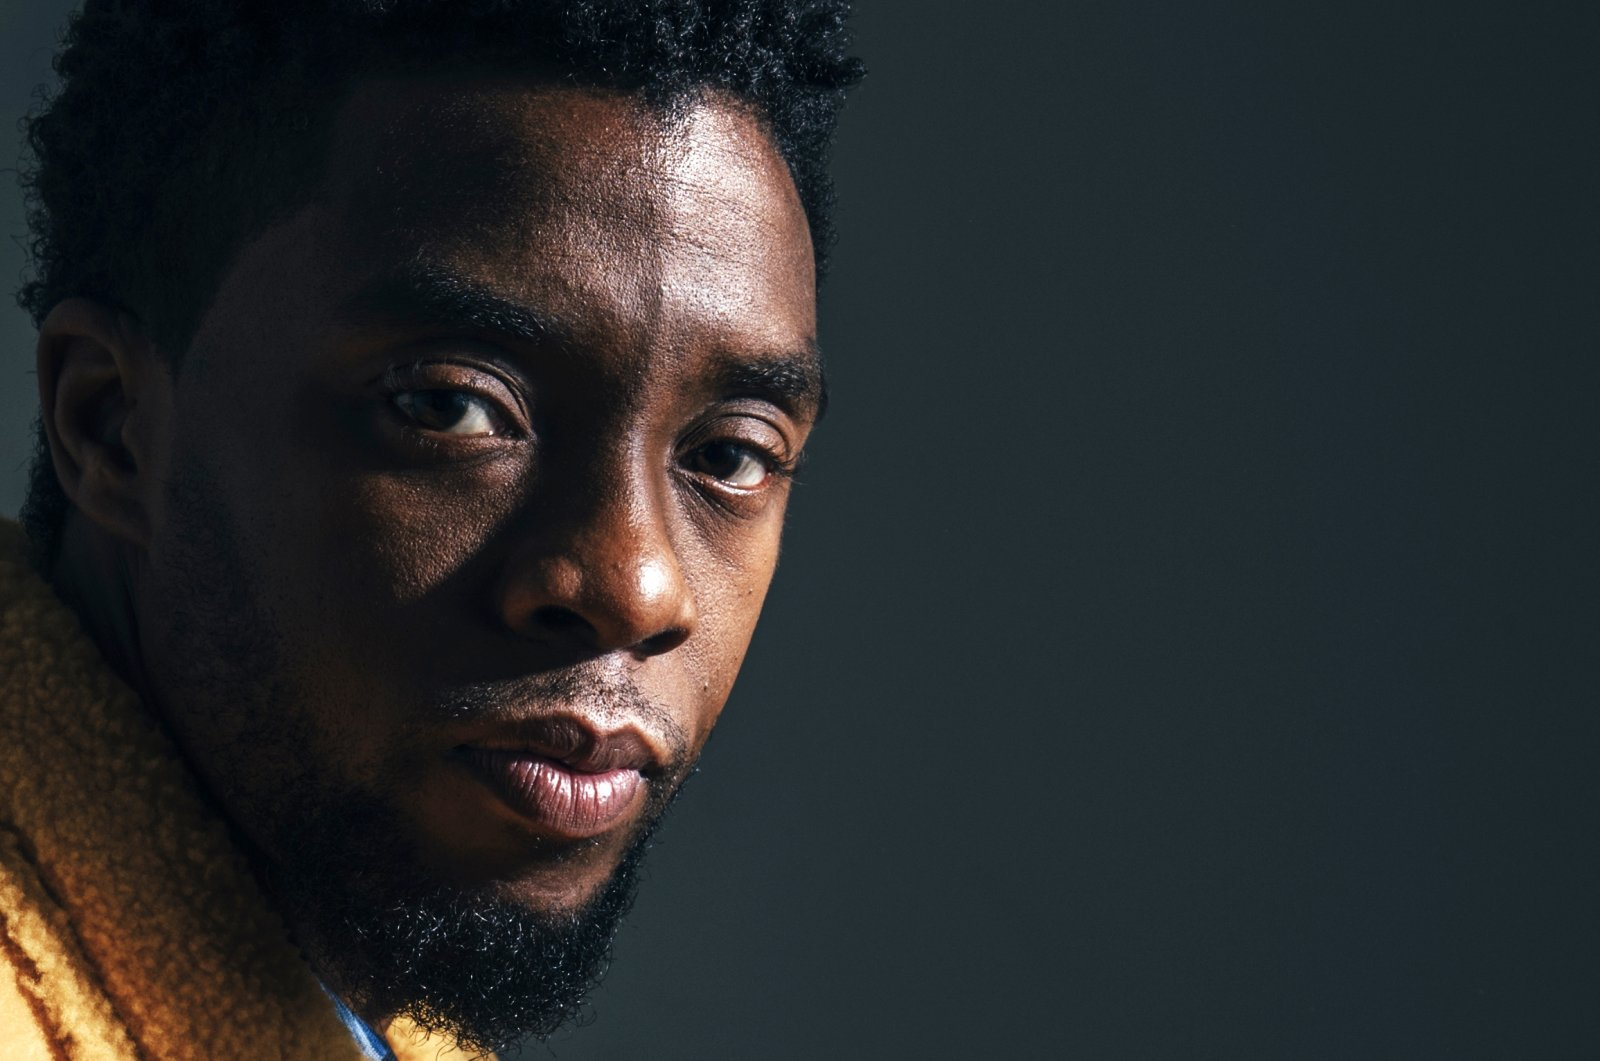 """Actor Chadwick Boseman poses for a portrait in New York to promote his film, """"Black Panther,"""" U.S., Feb. 14, 2018. (AP Photo)"""